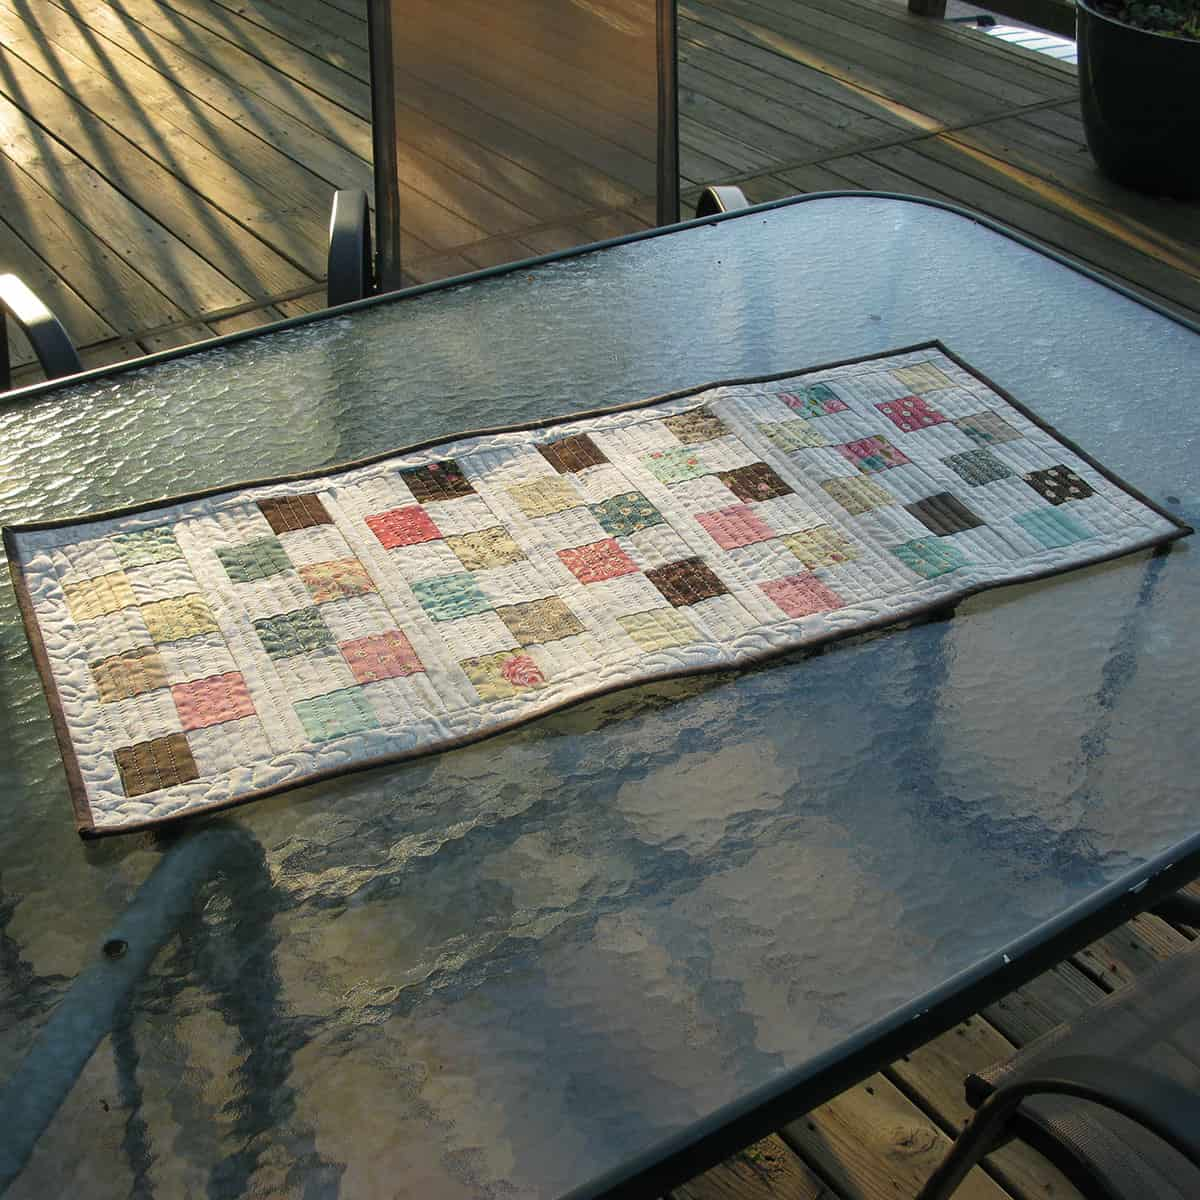 Quilted table runner on deck table